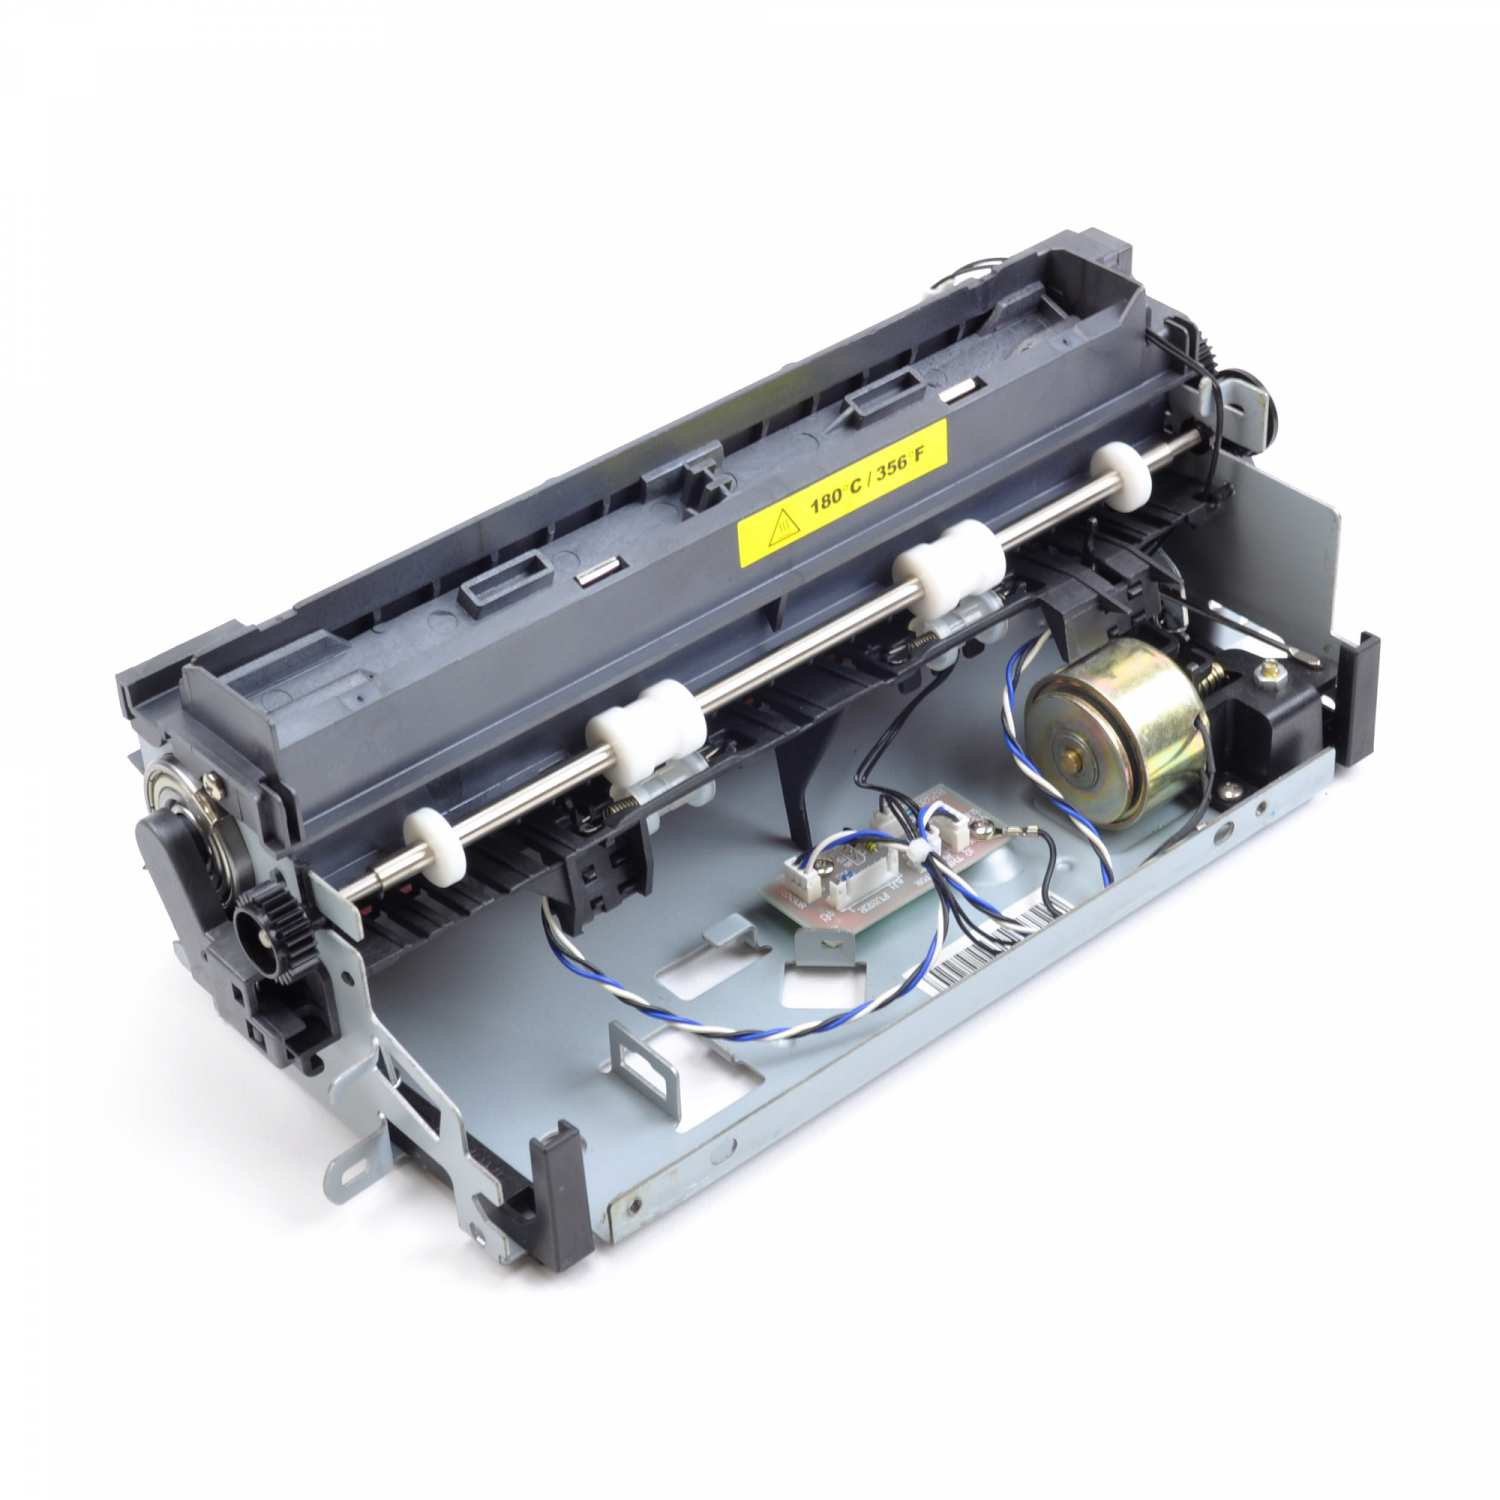 99A2423 Fuser Assembly (110V) Purchase for IBM T52x, InfoPrint 1120